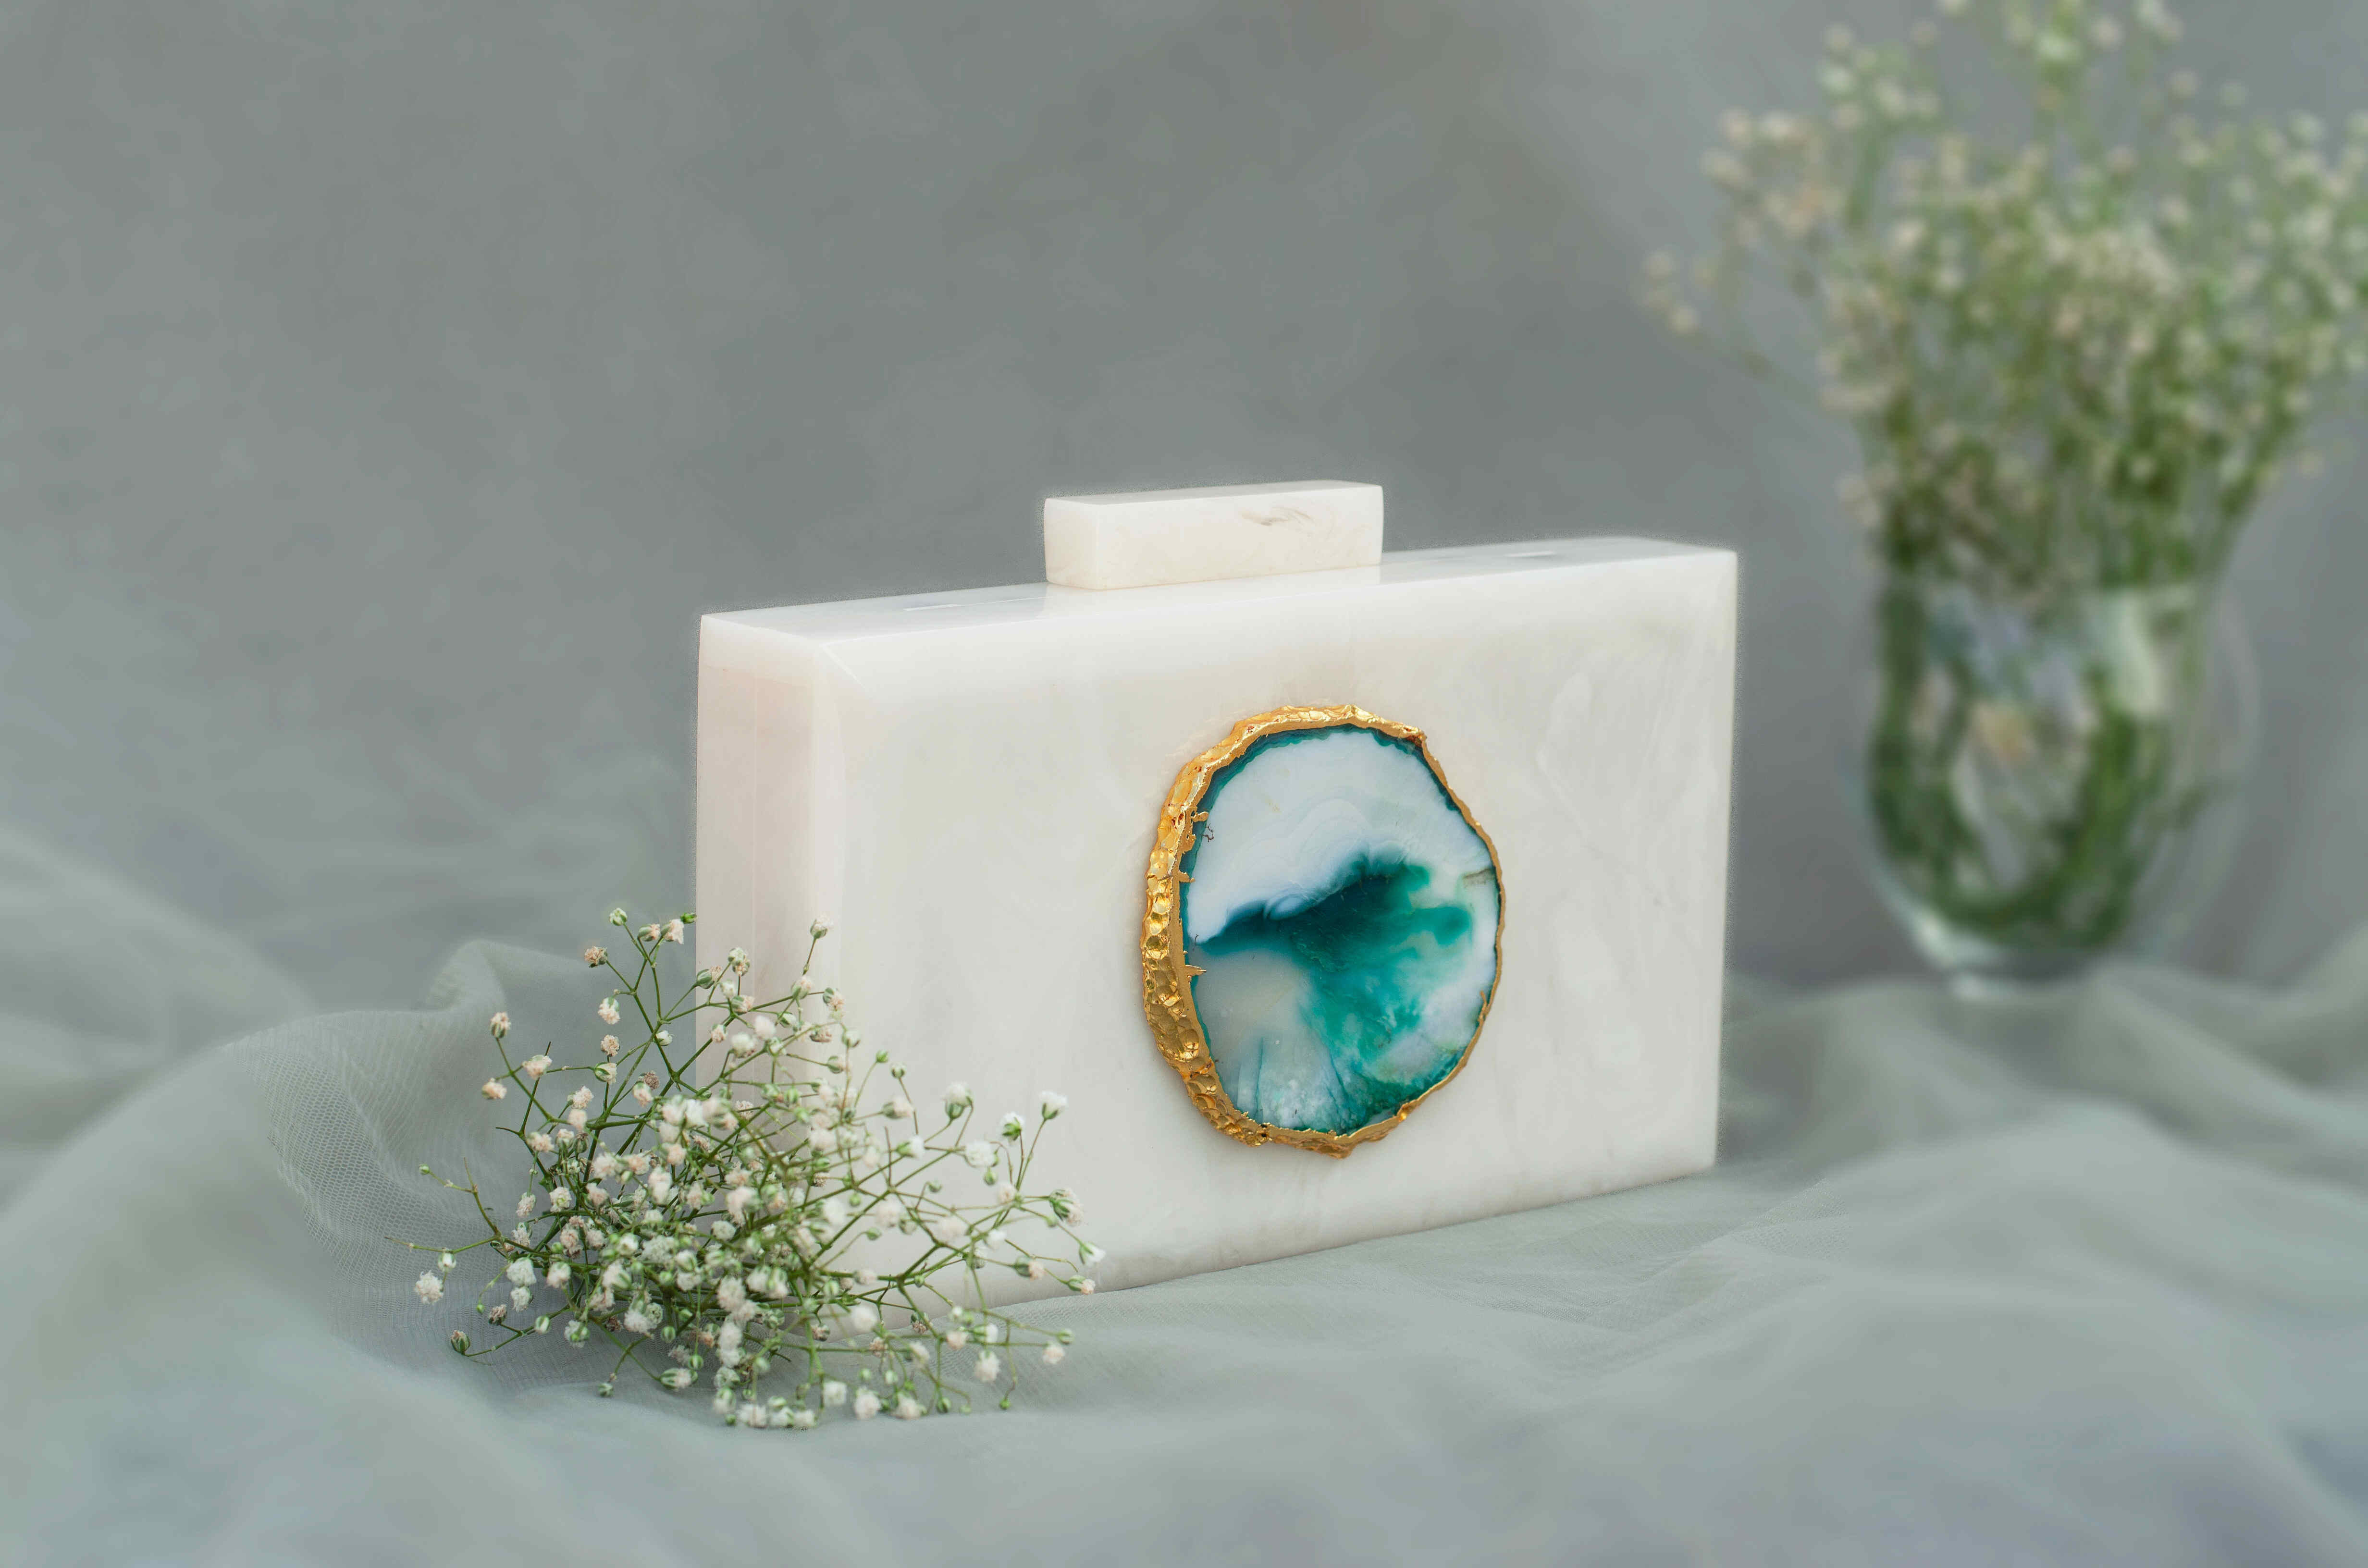 """""""Classic and Timeless designs that you can cherish forever! This Clutch is made of White Corian Marble - an heirloom piece that you can pass it on from generation to generation to keep the bond alive. Express yourself with this edgy Corian Clutch, handcrafted with agate stones that are irreplaceable for its natural shape and texture. It can be a perfect evening accessory to style your festive as well as your party looks and comes with a golden Sling. The Agate stone can vary in shape and color as it is a natural stone."""""""